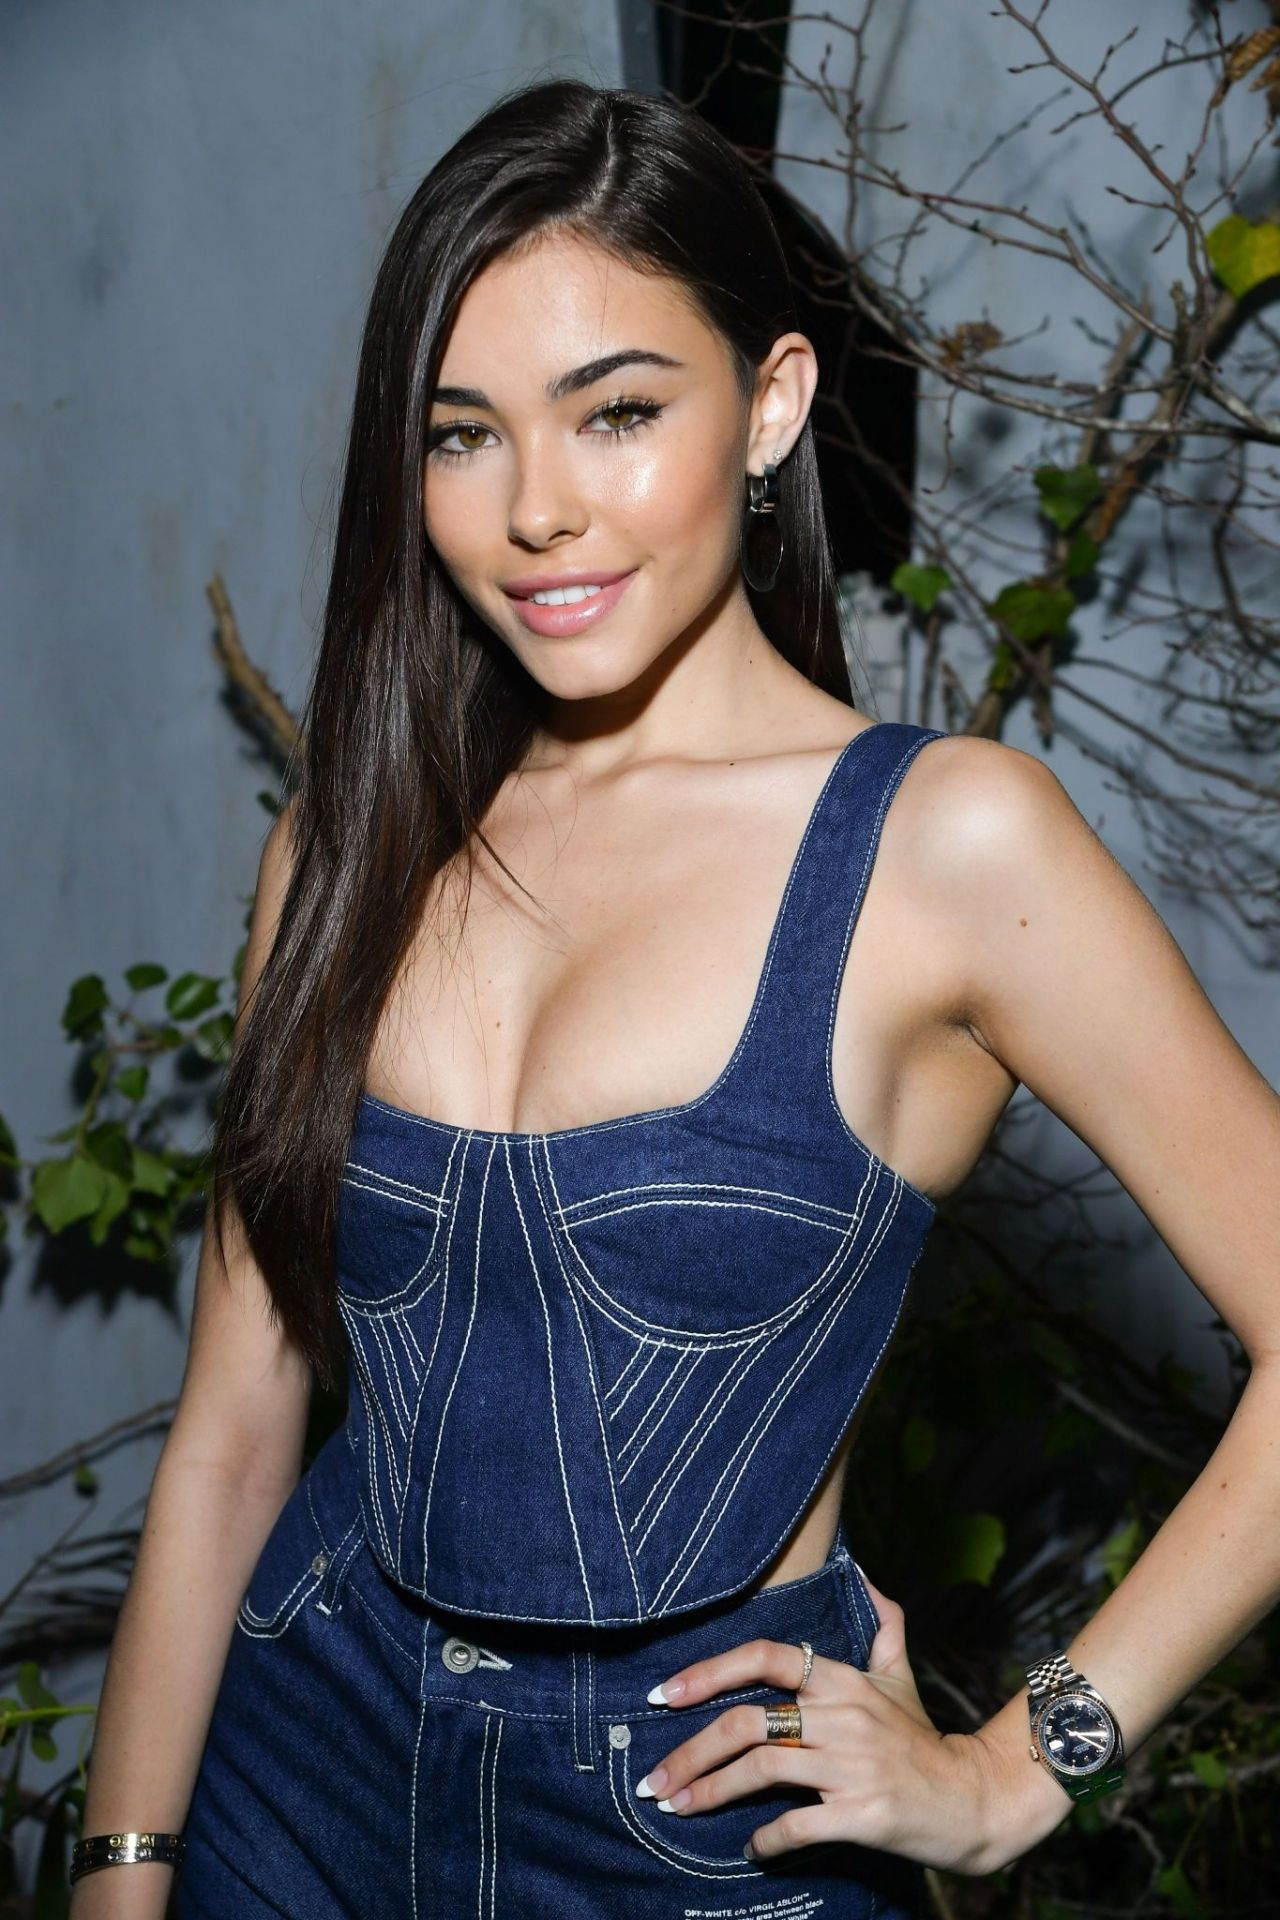 madison beer photoshoot 2020